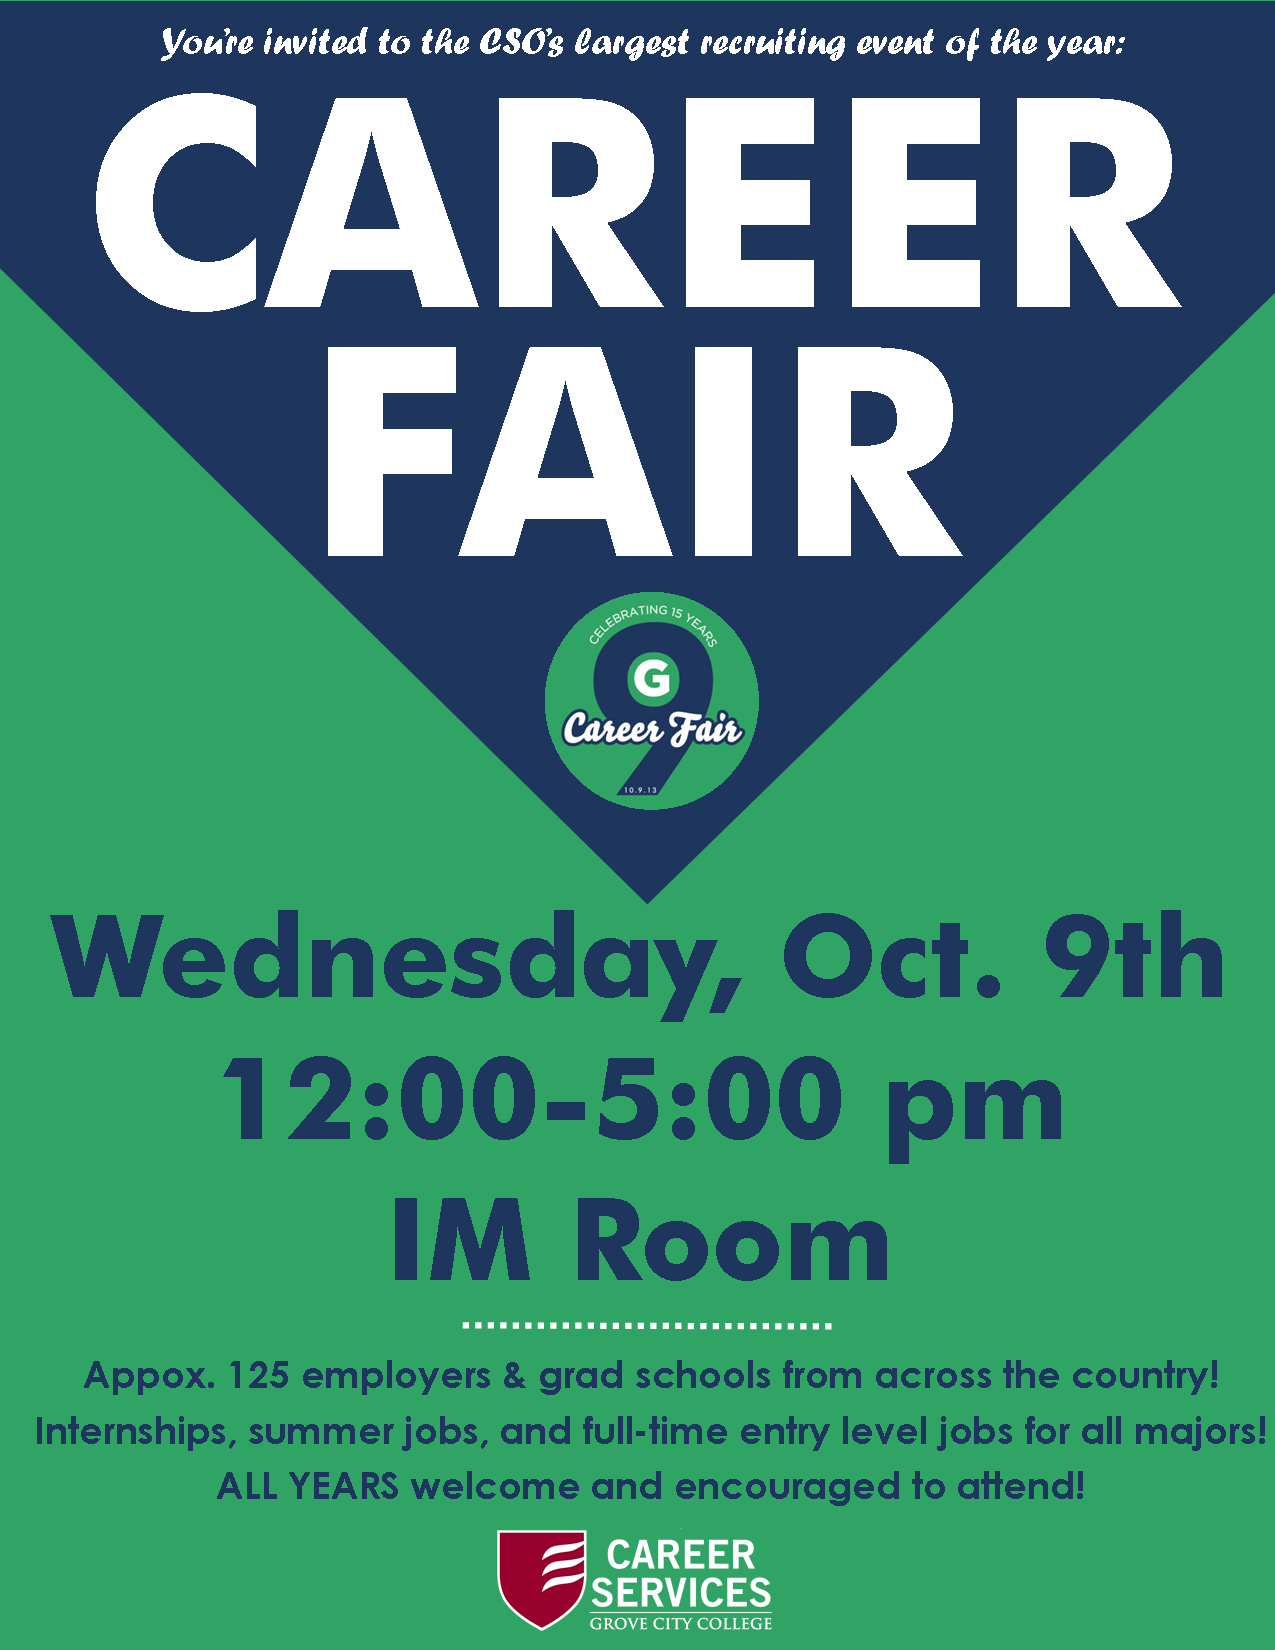 Career Fair Flyer For GccS Career Services Office By Grace